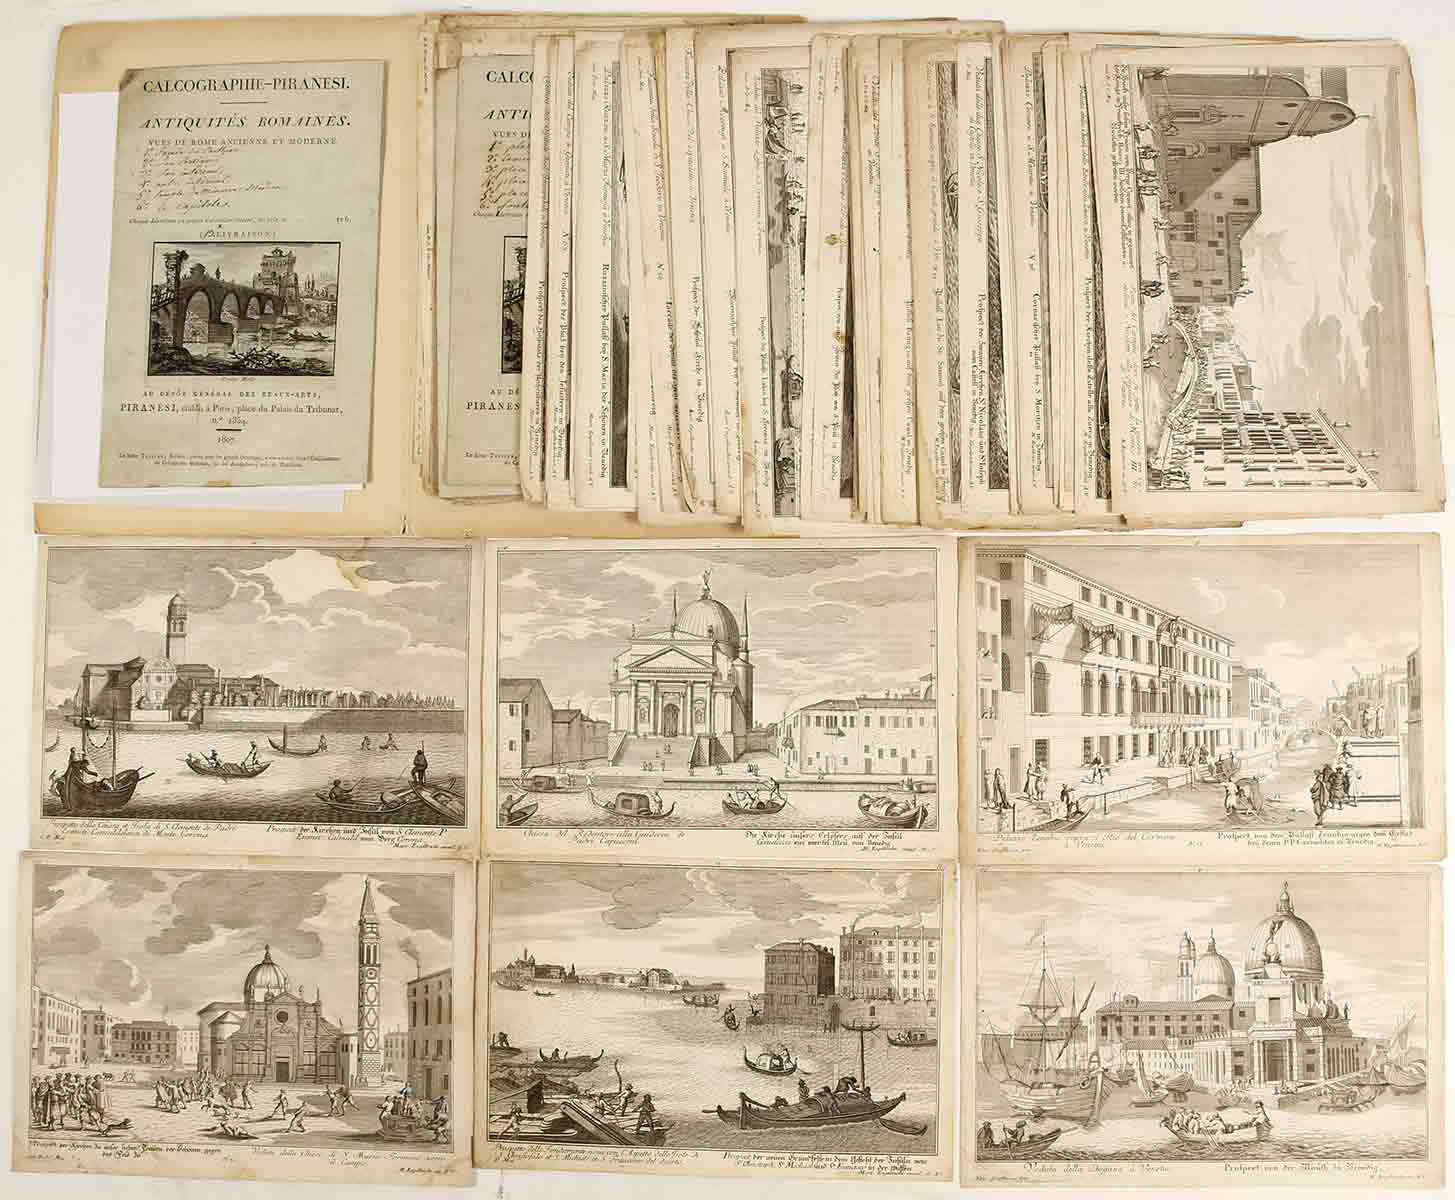 Rome: Original Prints From Piranesi, 1807